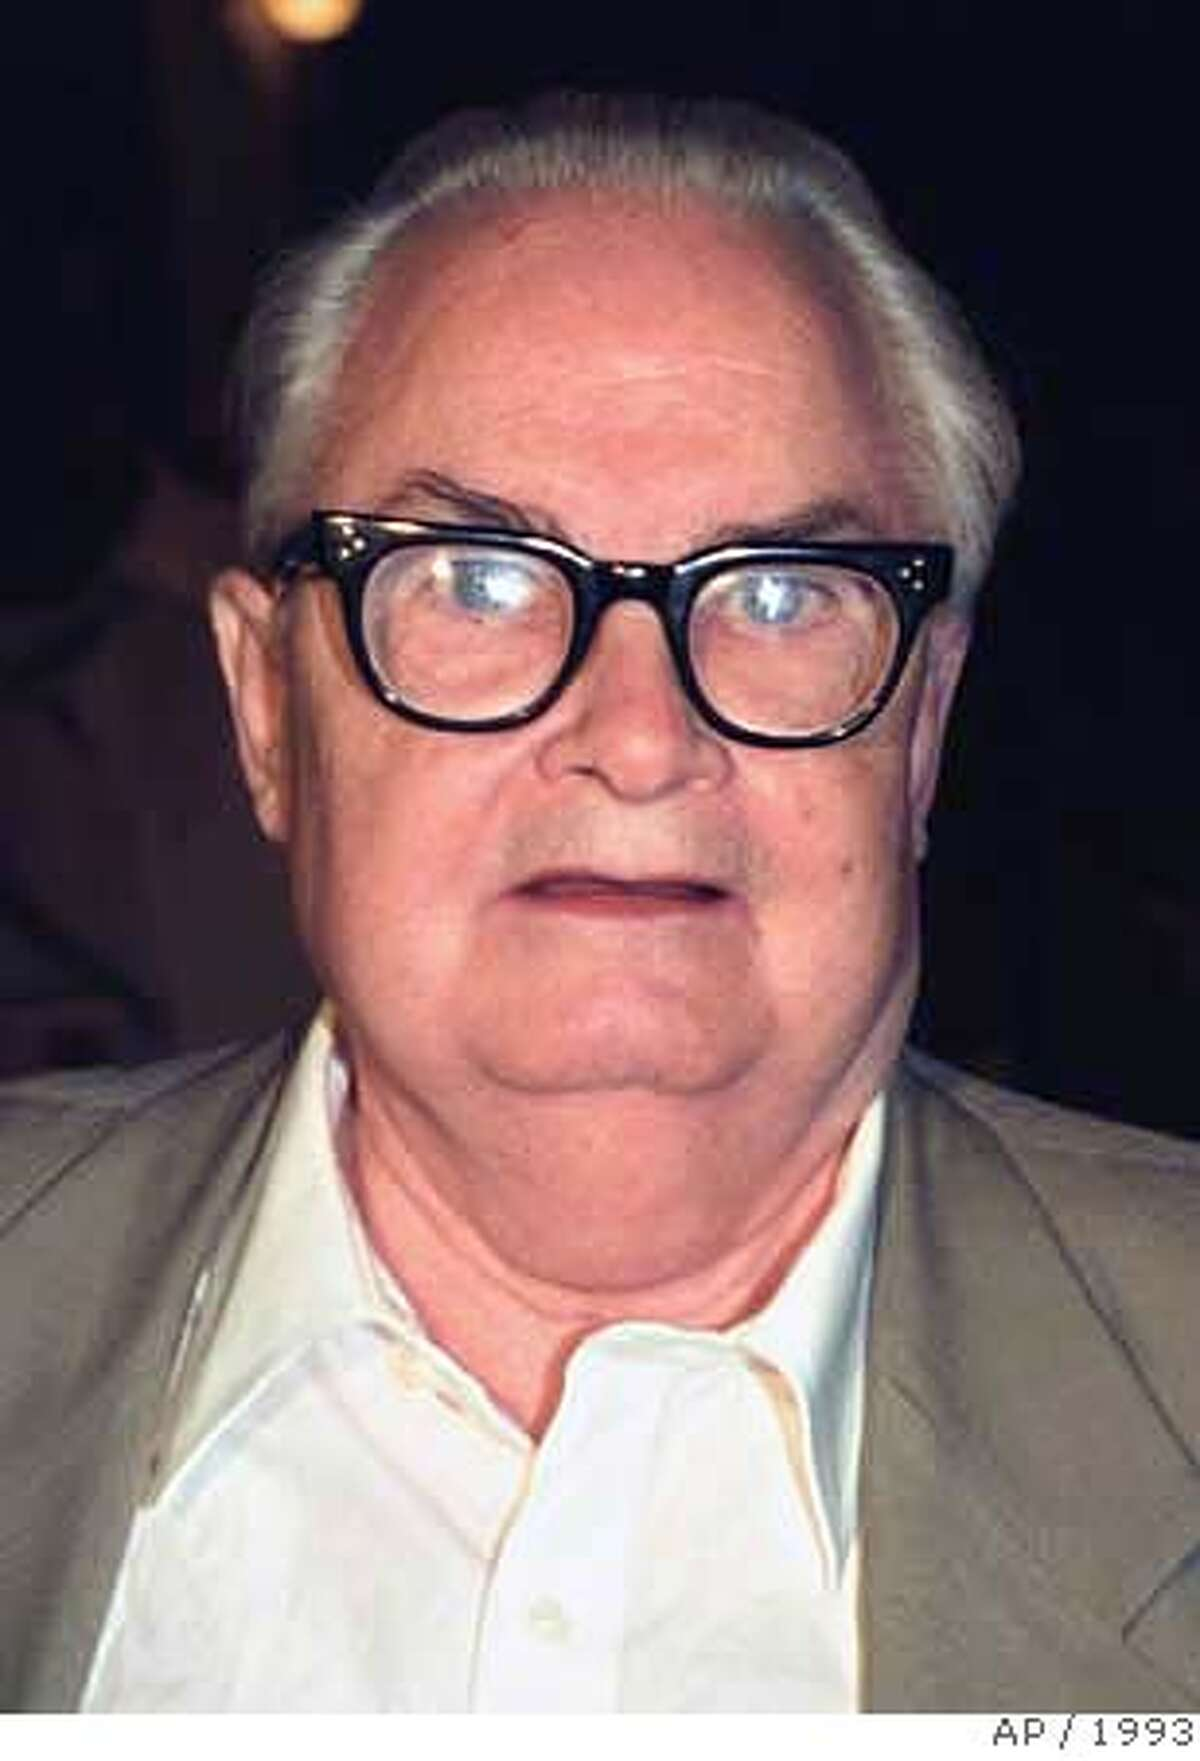 """This photo of character actor Calvert DeForest was taken in New York in August of 1993. DeForrest, who appeared as Larry """"Bud"""" Melman on NBC's """"Late Night with David Letterman"""" and under his own name when Letterman brought the show to CBS, died Monday, March 19, 2007. He was 85. (AP Photo) AN AUGUST 1993 FILE PHOTO."""